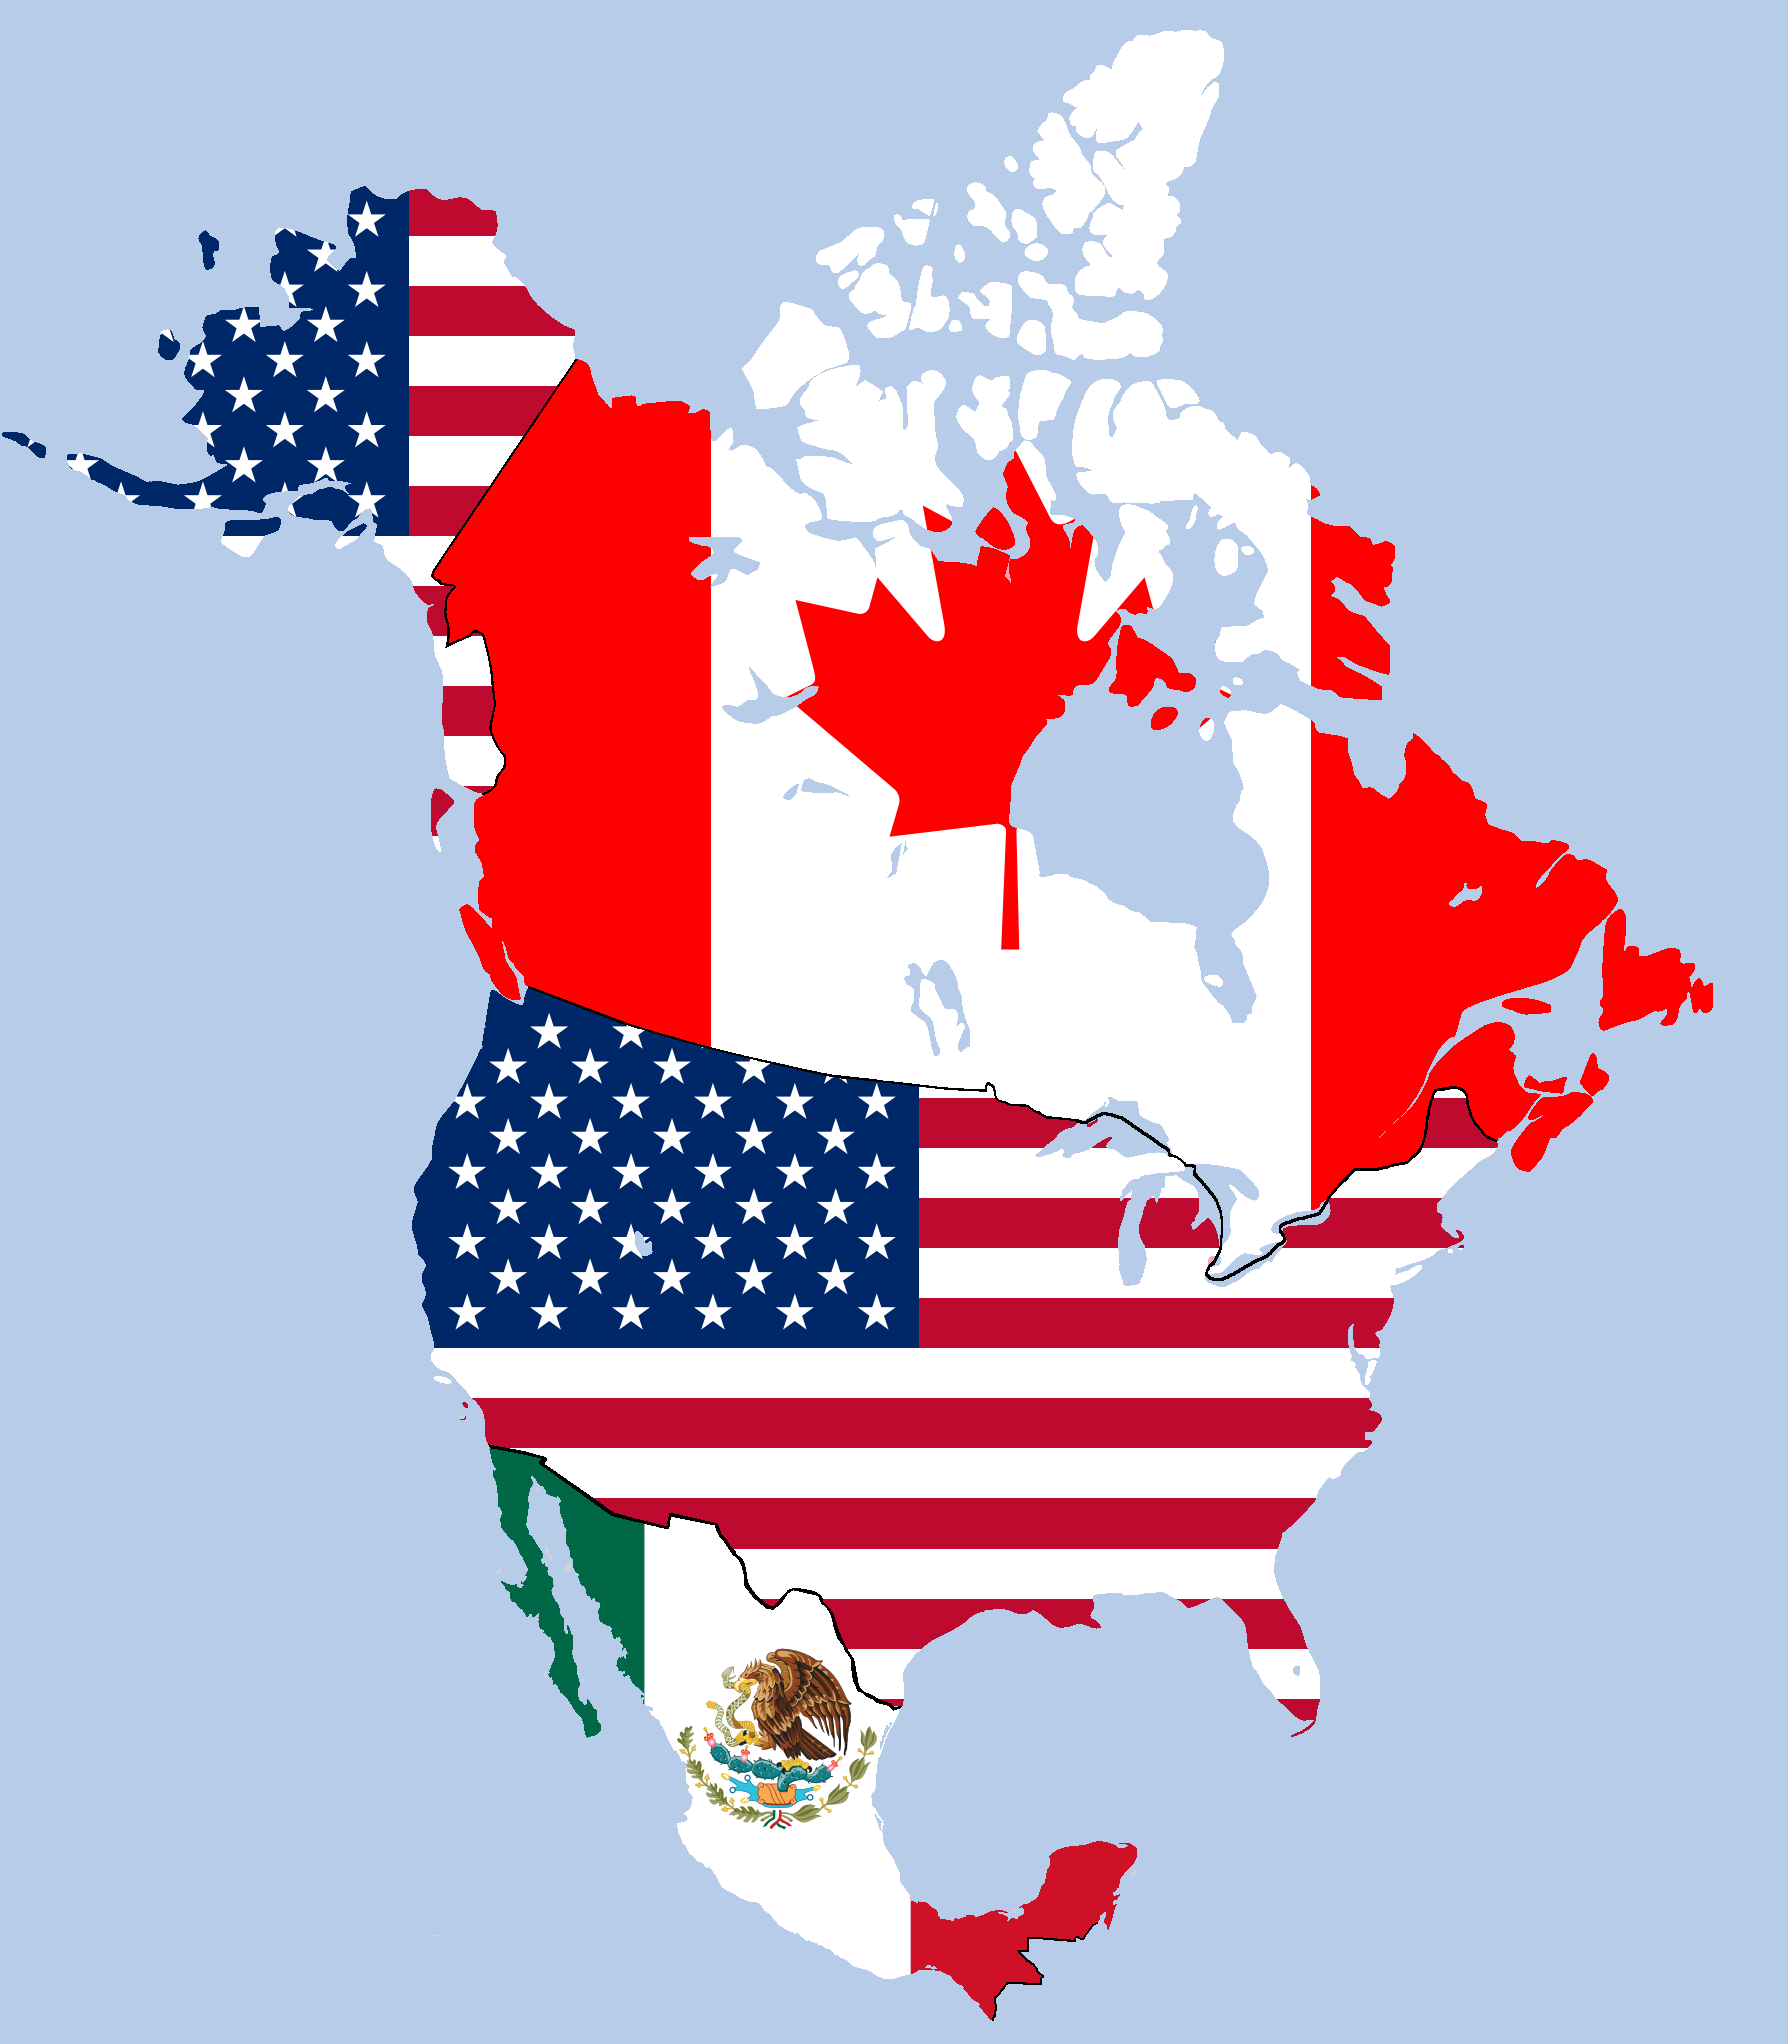 Mexico Expects US to Comply with Rules in New North American Trade Pact